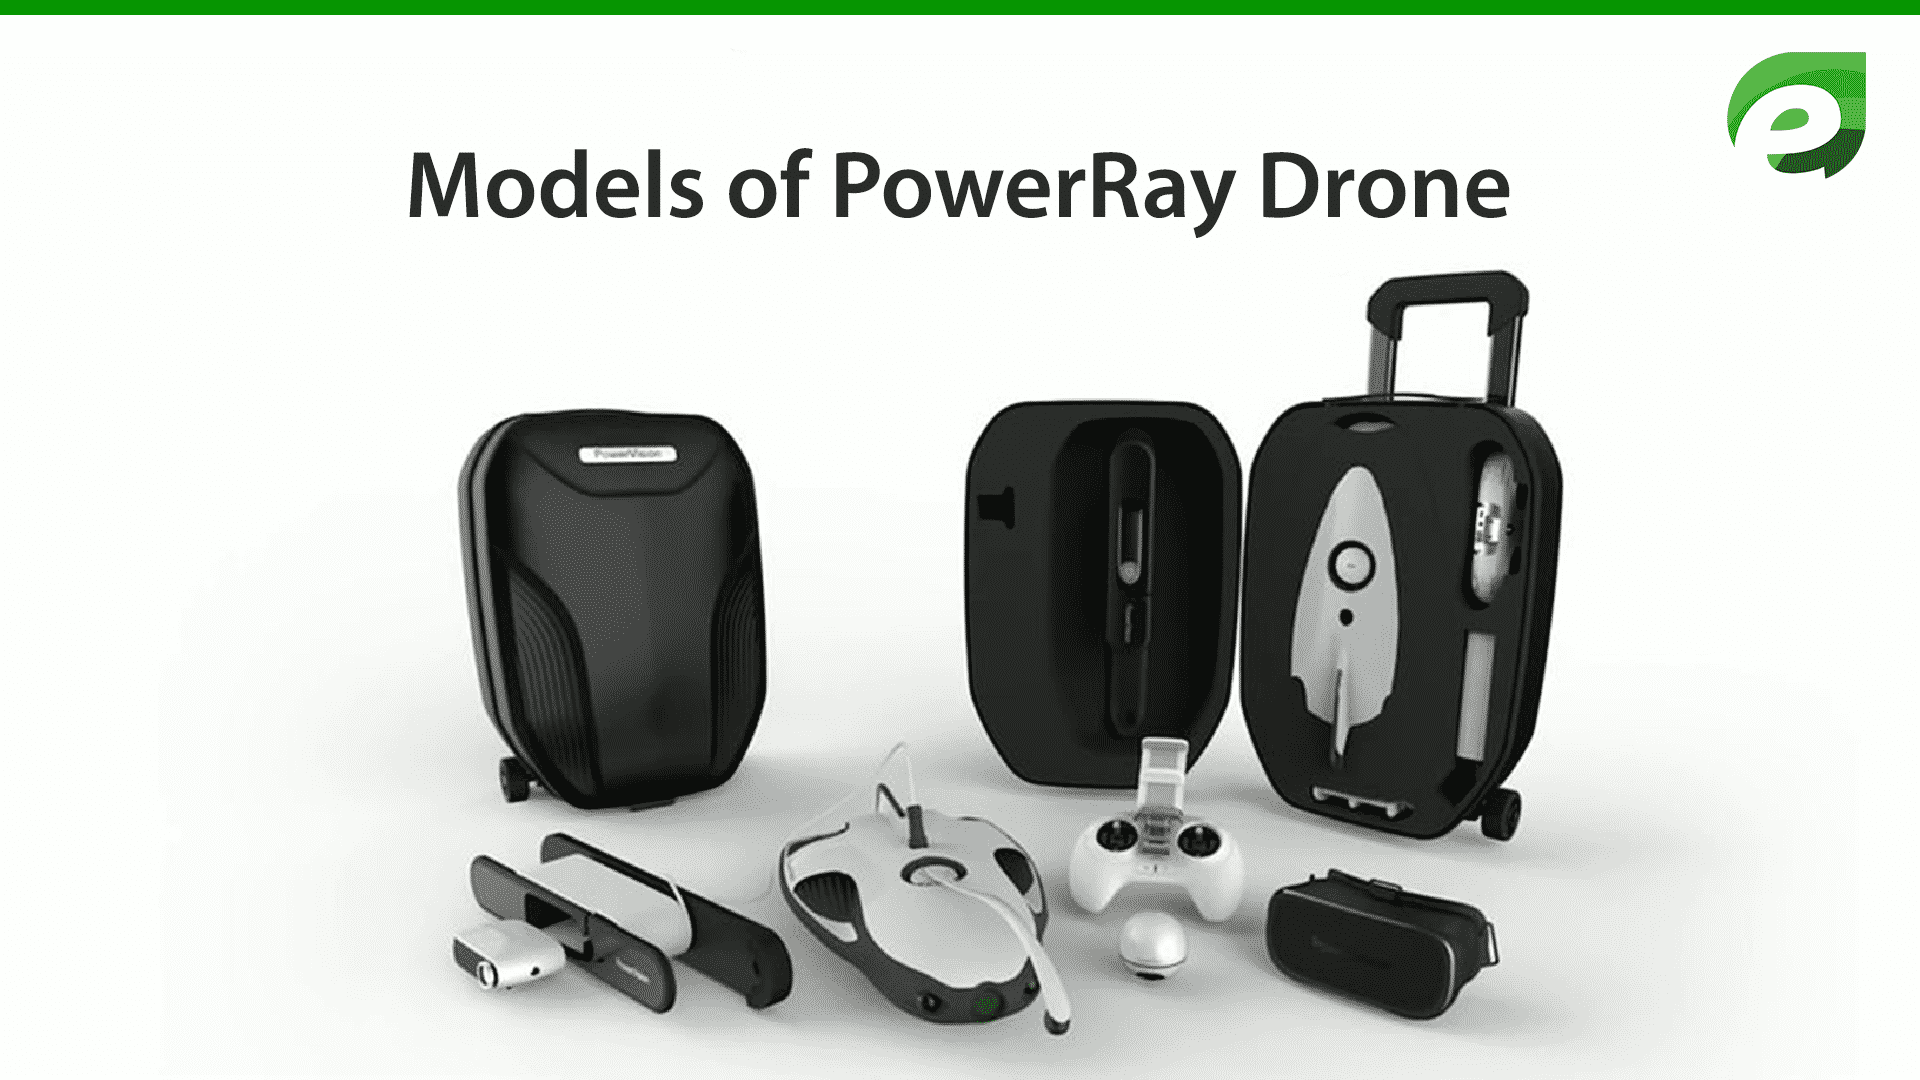 PowerRay drone- models